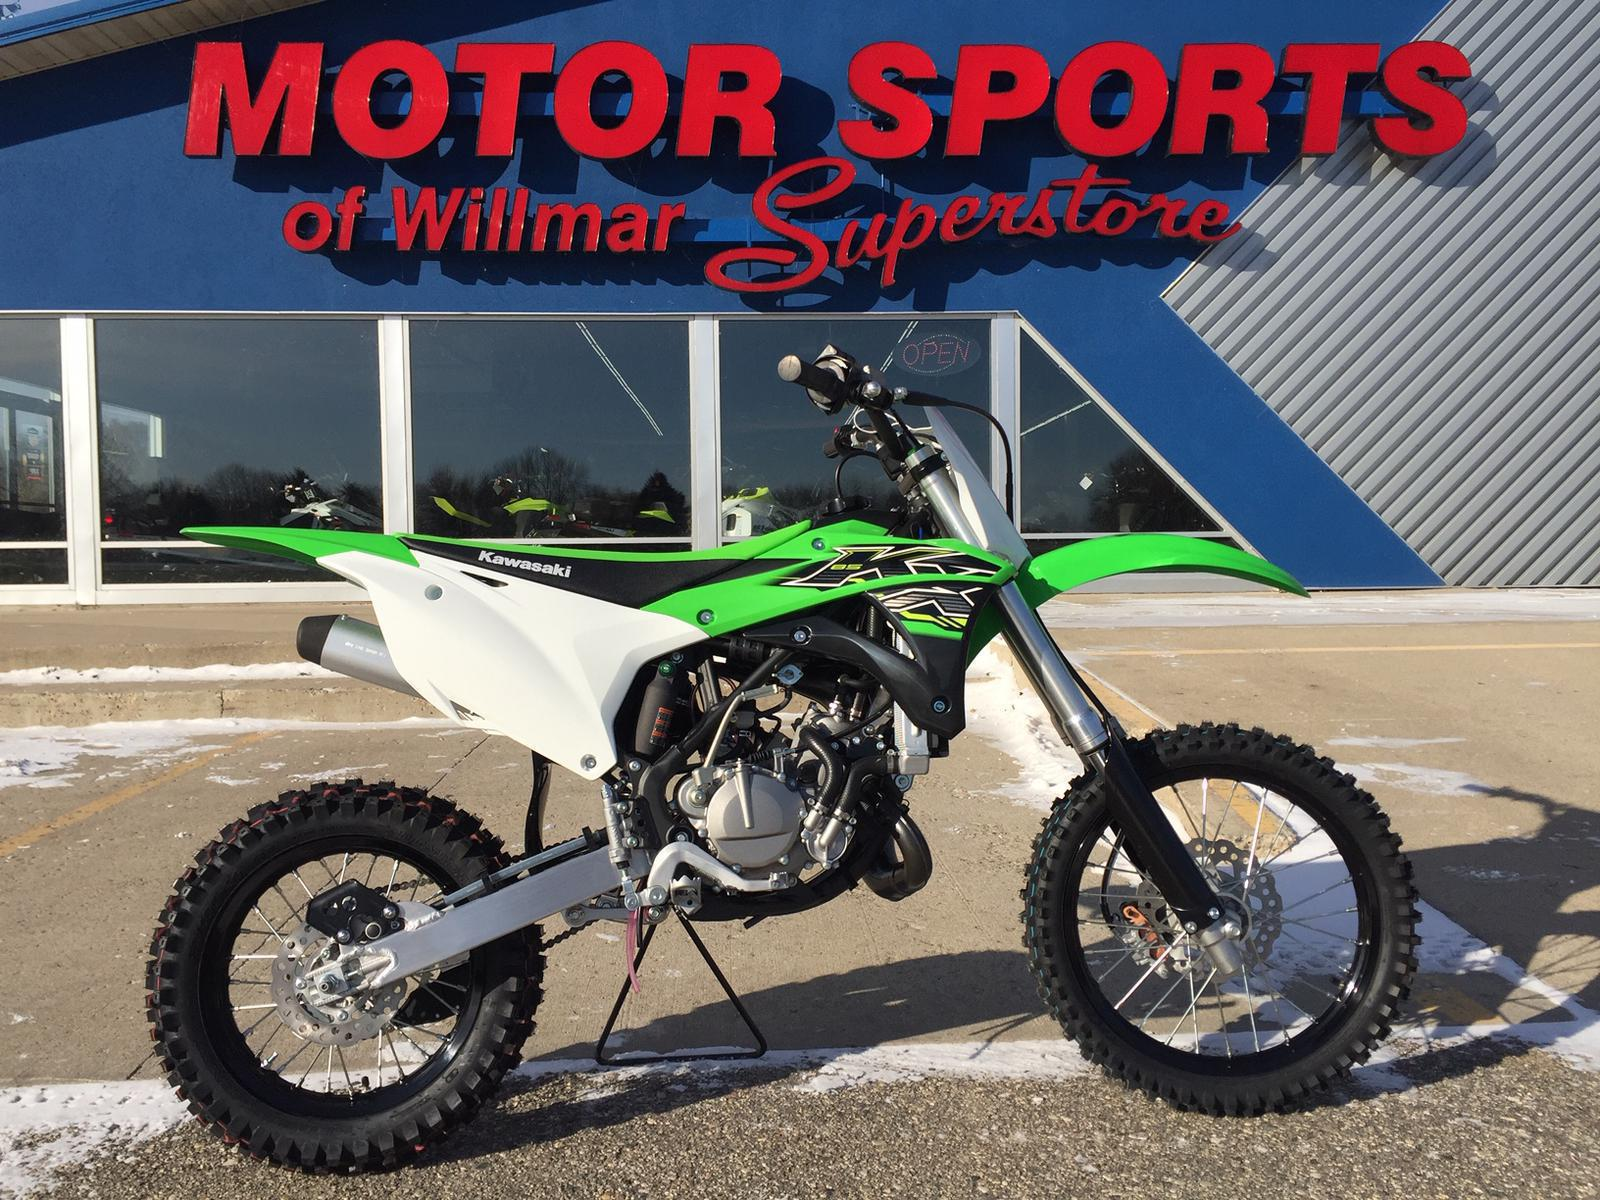 Remarkable 2019 Street Bikes And Dirt Bikes Motor Sports Of Willmar Pabps2019 Chair Design Images Pabps2019Com